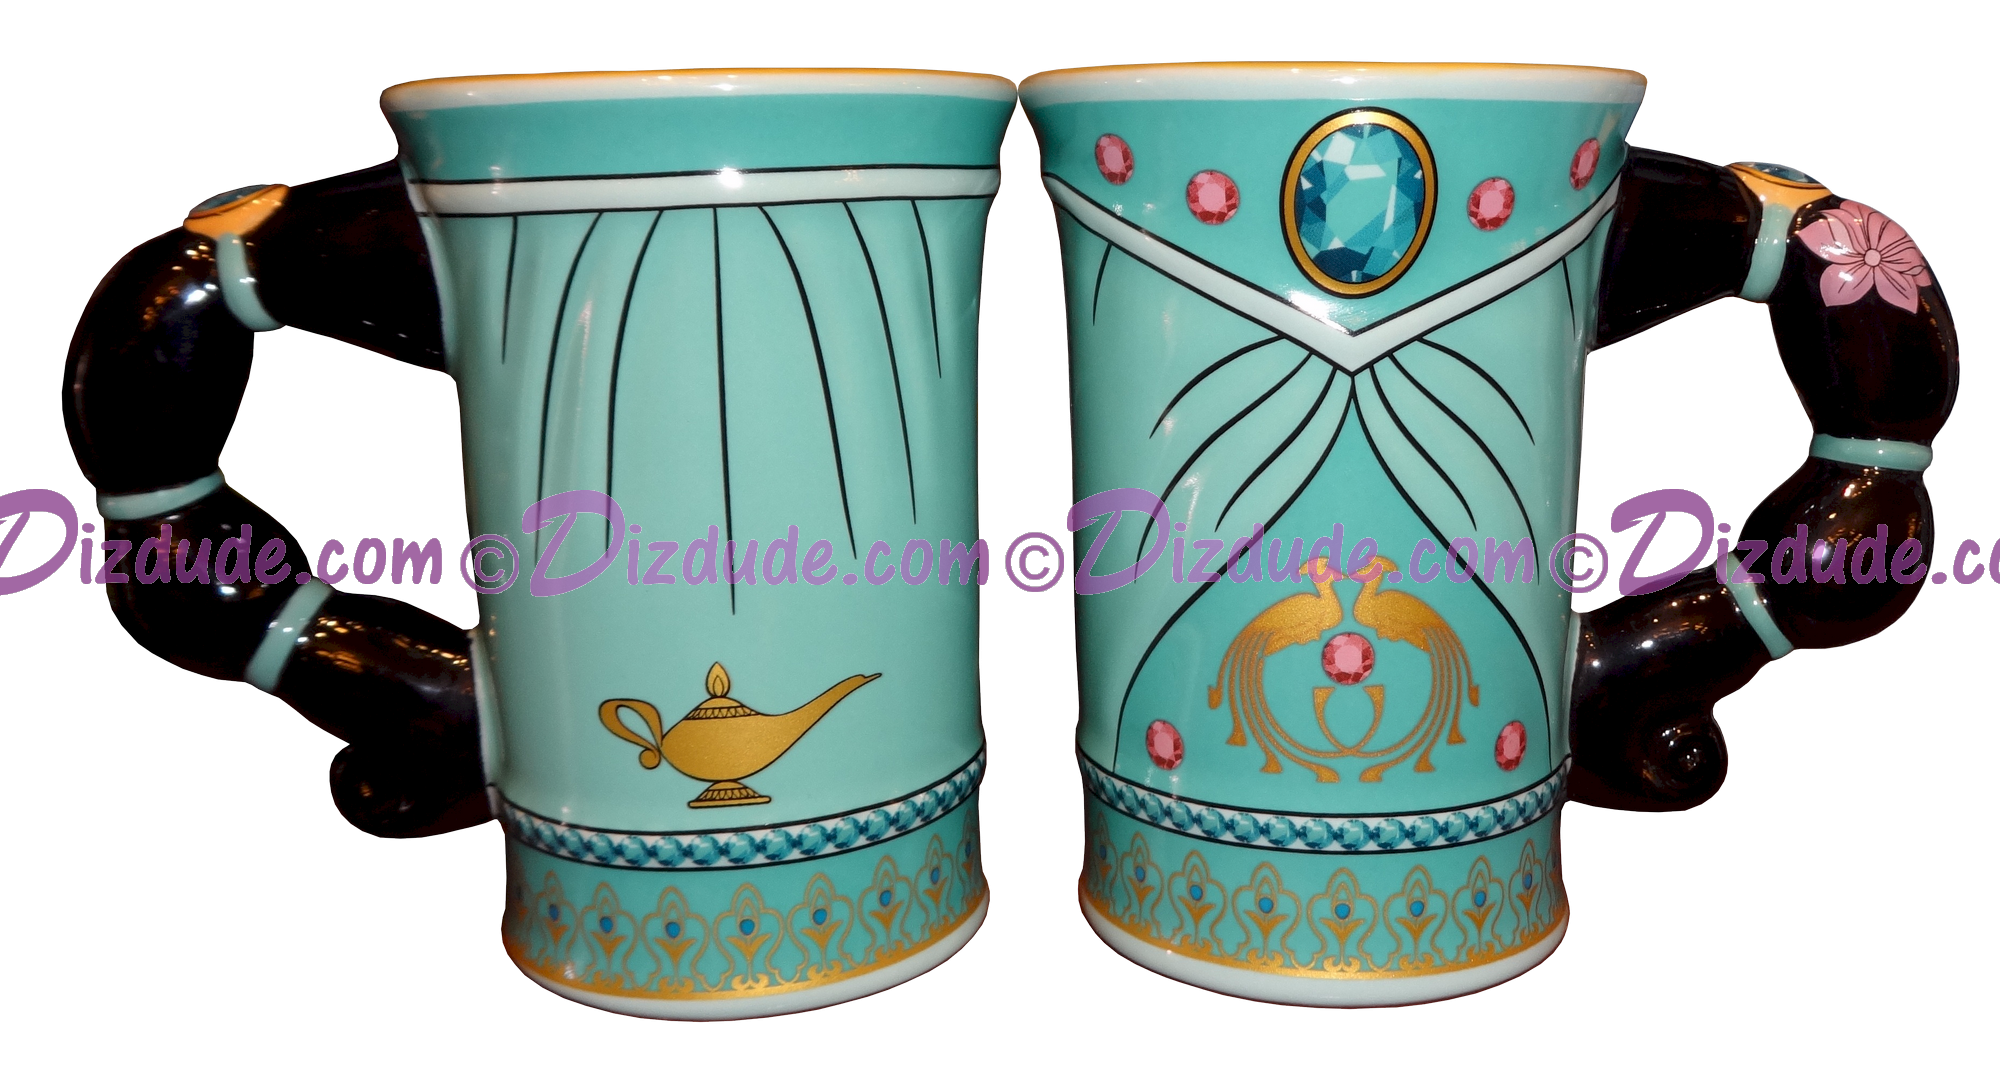 Disney Jasmine Sculptured Mug - Part of the Disney Princess Mug Collection © Dizdude.com